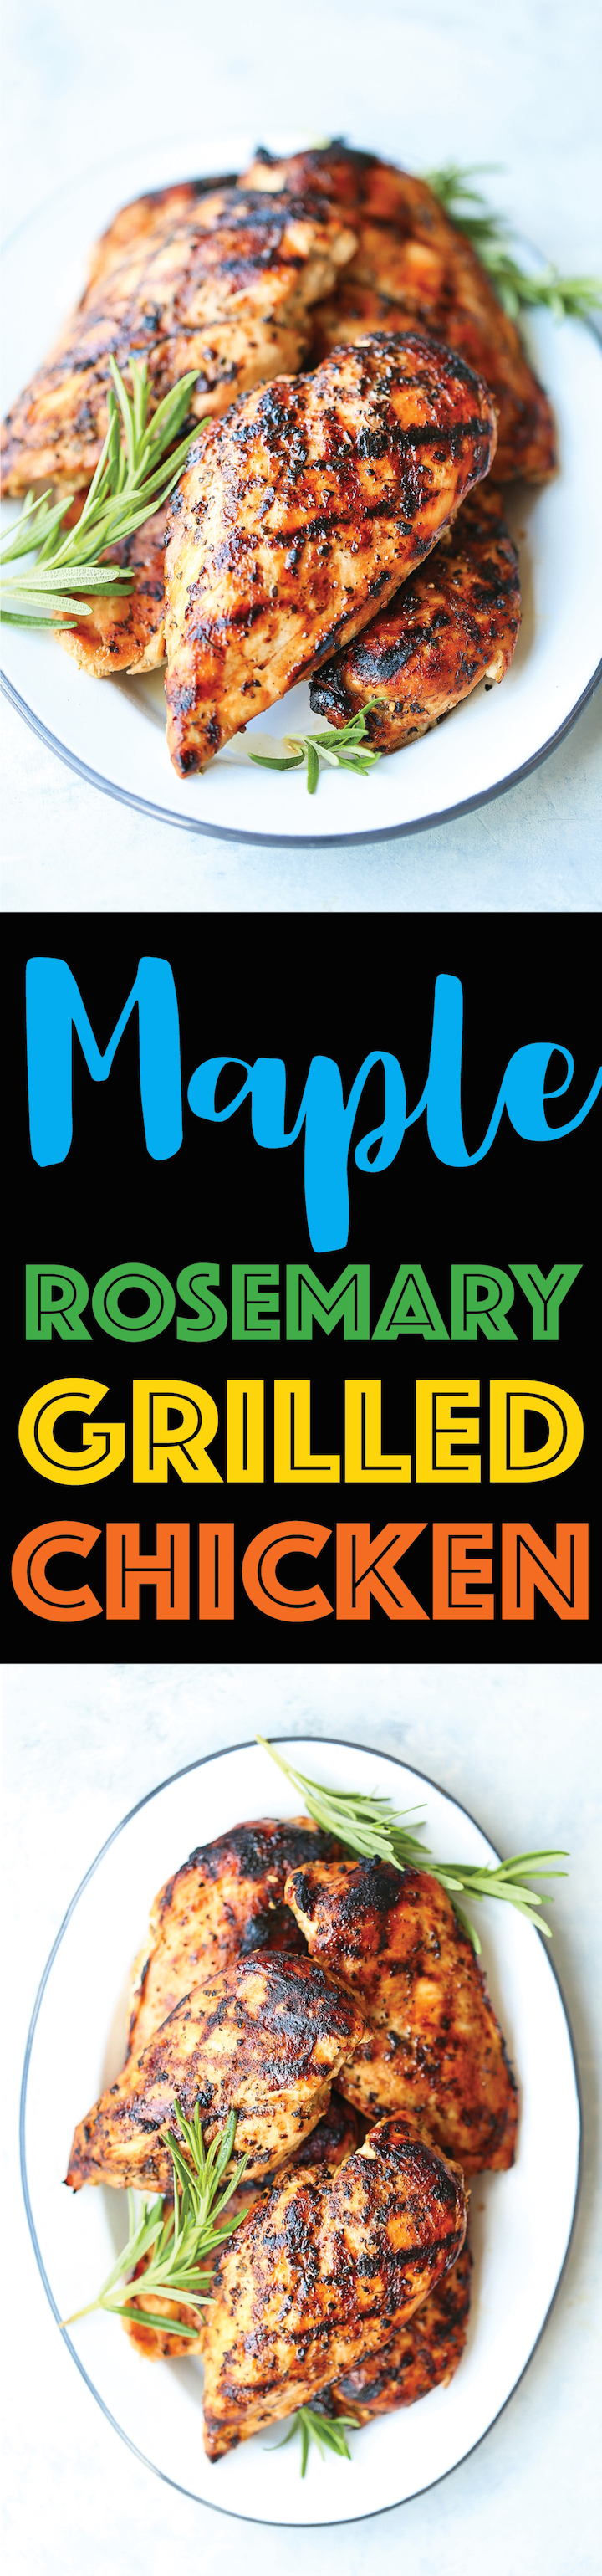 Maple Rosemary Grilled Chicken - Truly the best grilled chicken ever! It's wonderfully sweet and savory with just so much flavor with the simplest marinade!